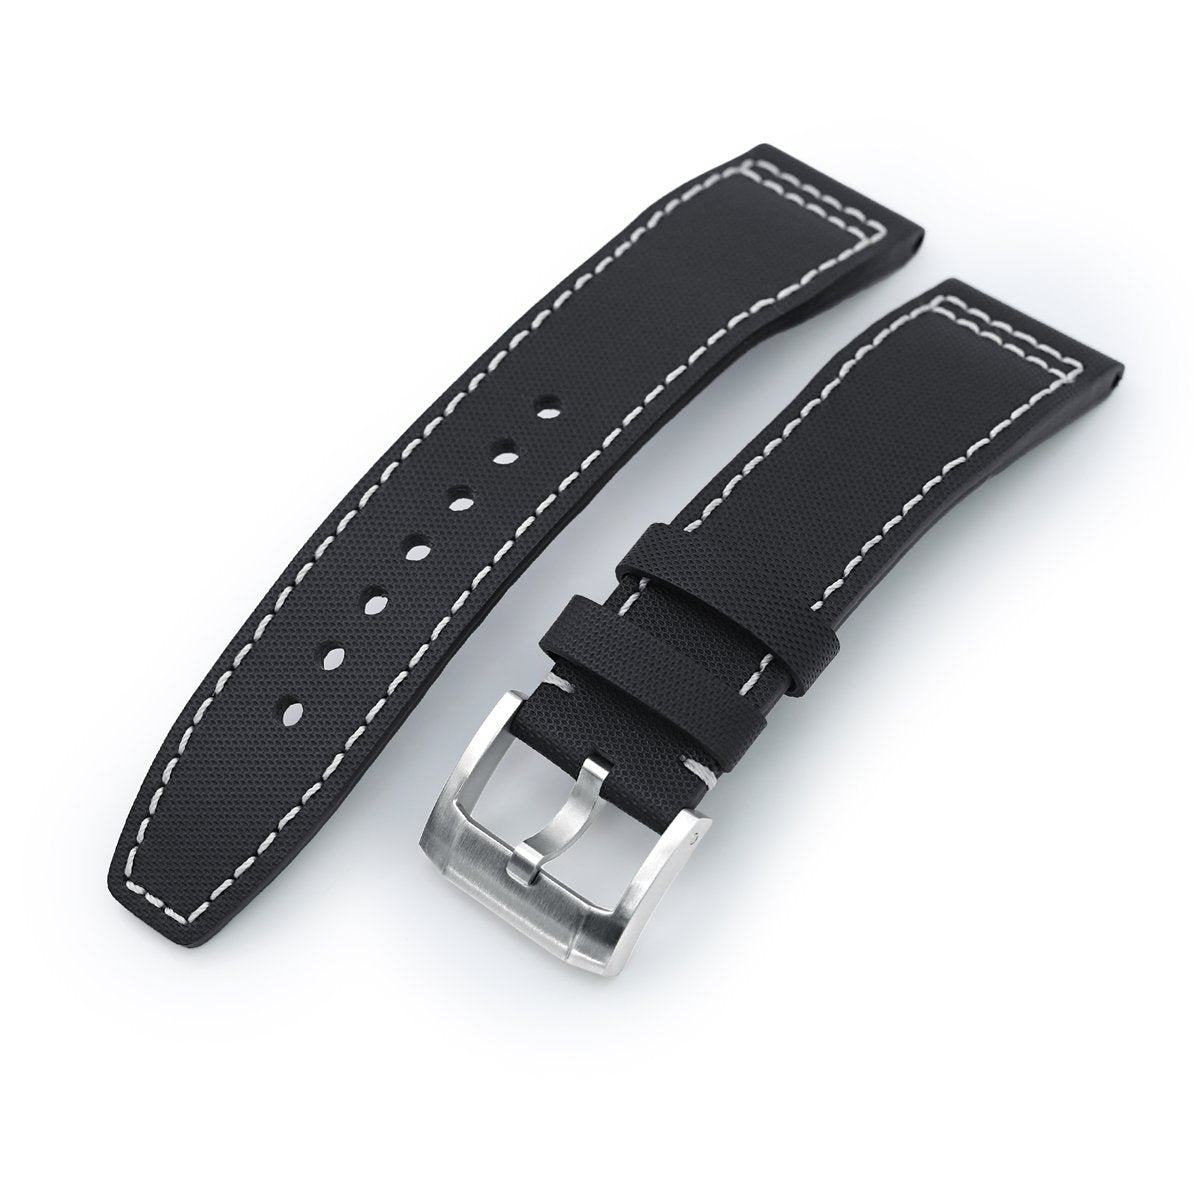 20mm to 23mm Pilot Black Woven Texture Watch Strap Beige Stitching Brushed Strapcode Watch Bands